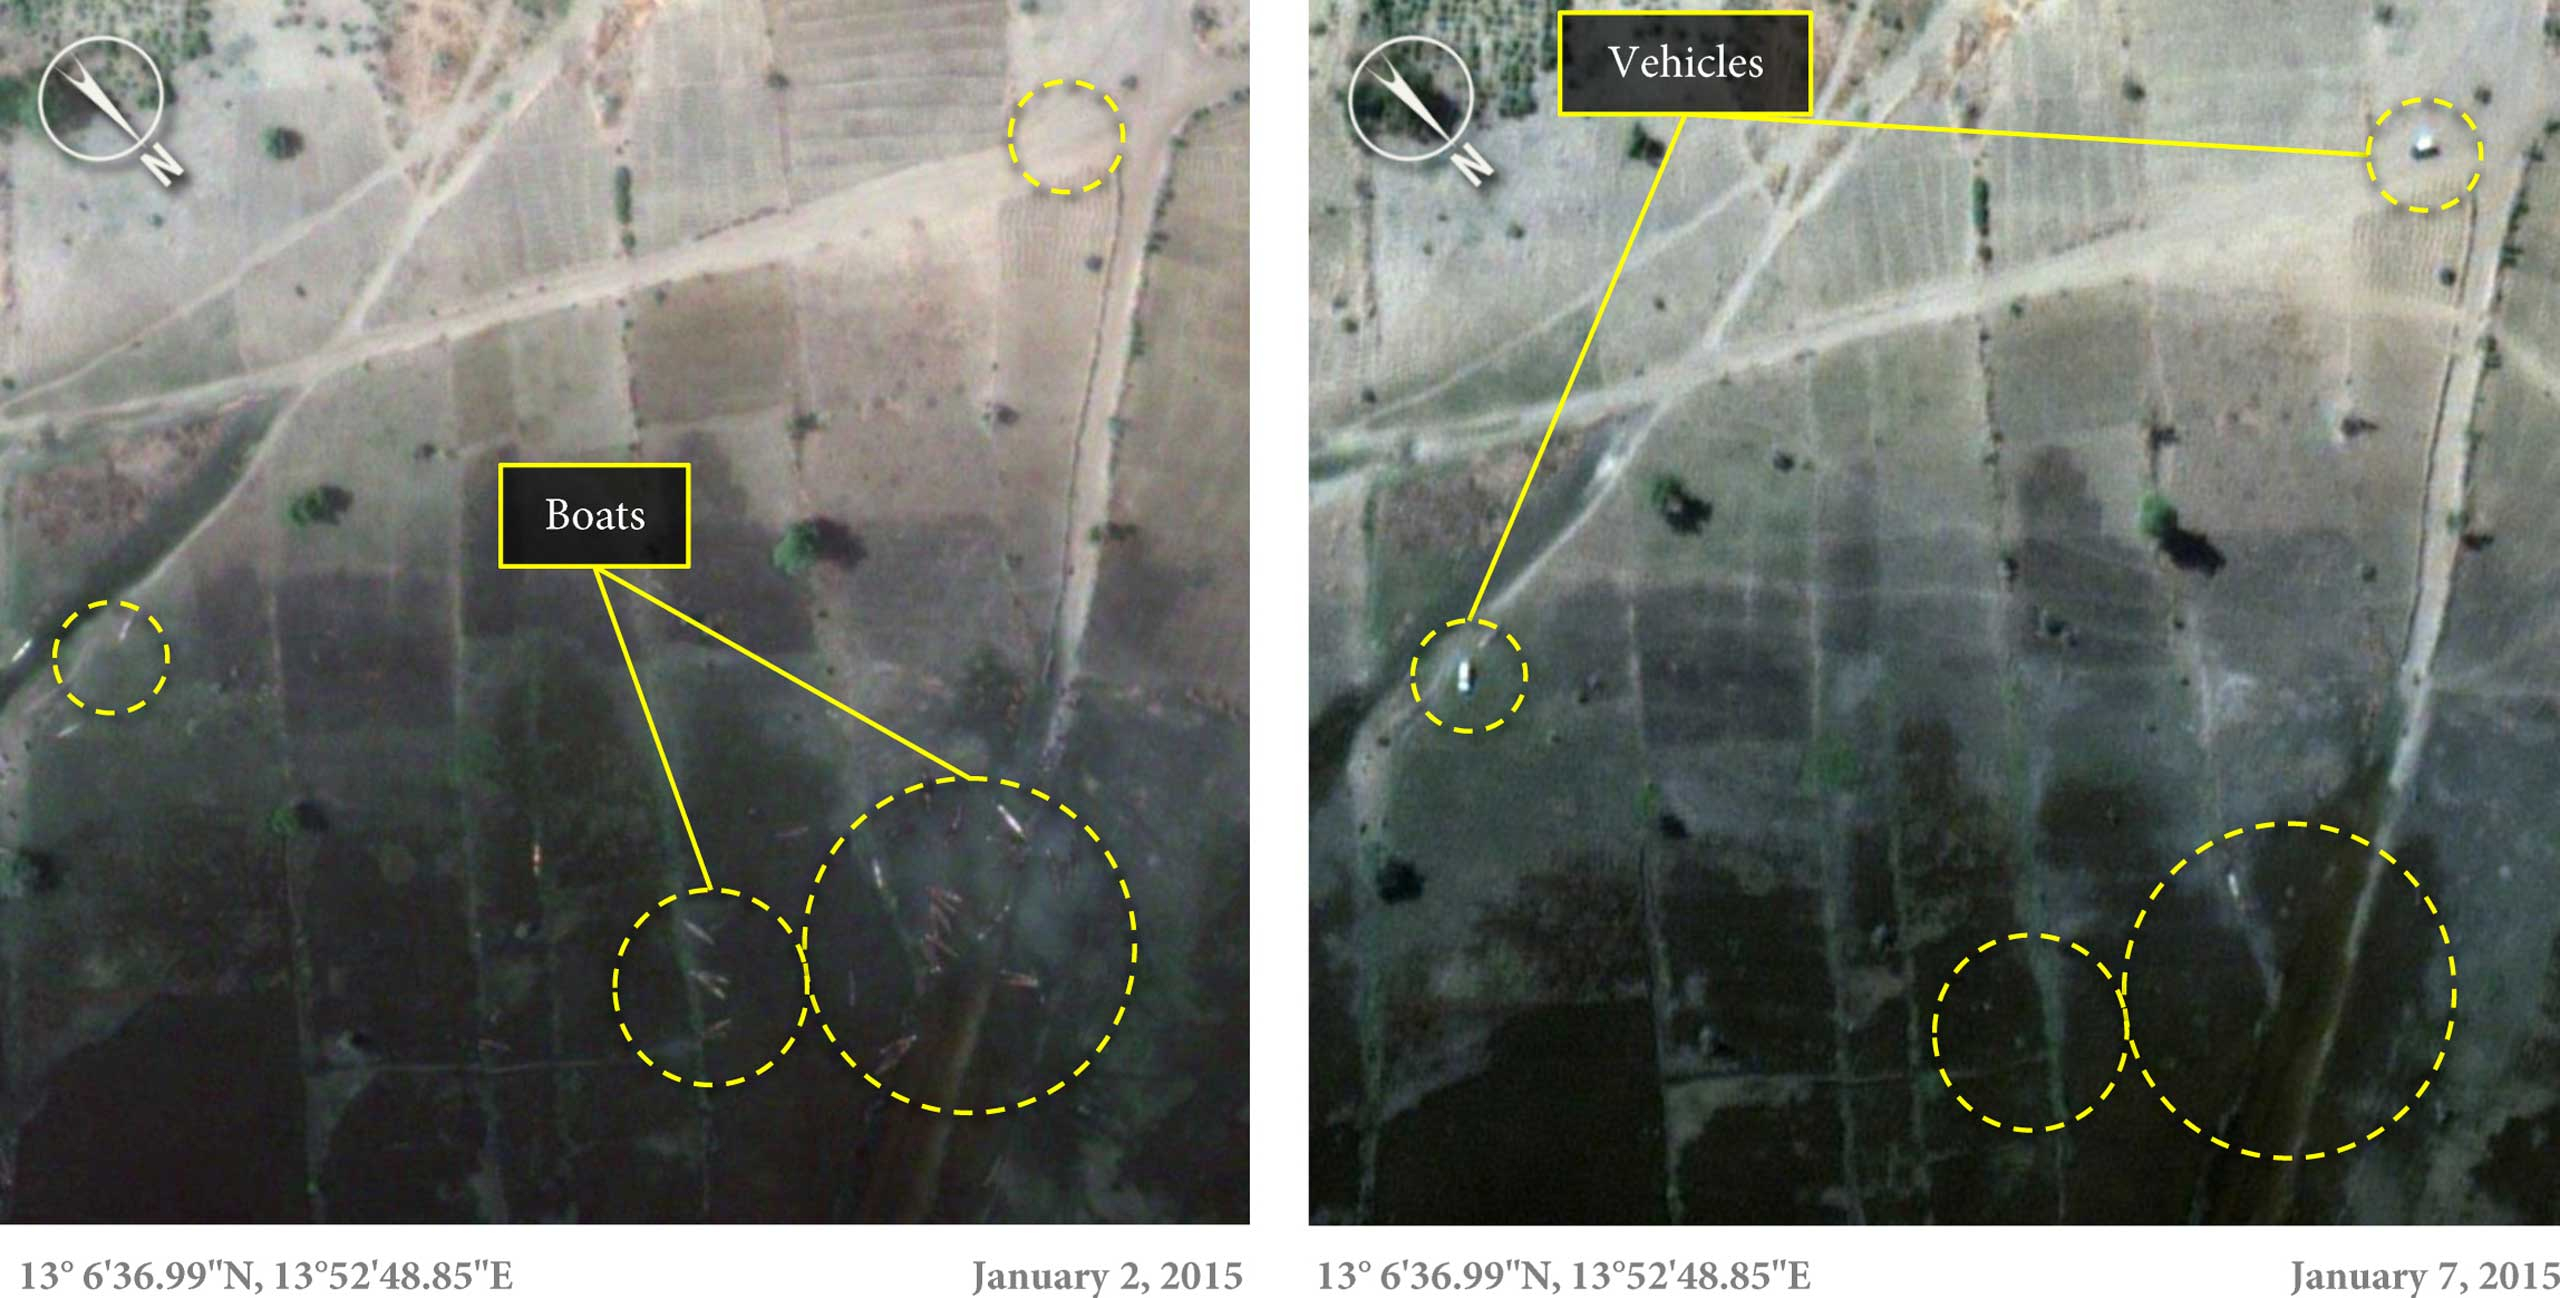 Two satellite images taken on Jan. 2 and Jan. 7, 2015, which show the shore of Lake Chad at Doro Baga, northeastern Nigeria. (The boats visible in the Jan. 2 image are no longer present on Jan. 7.)